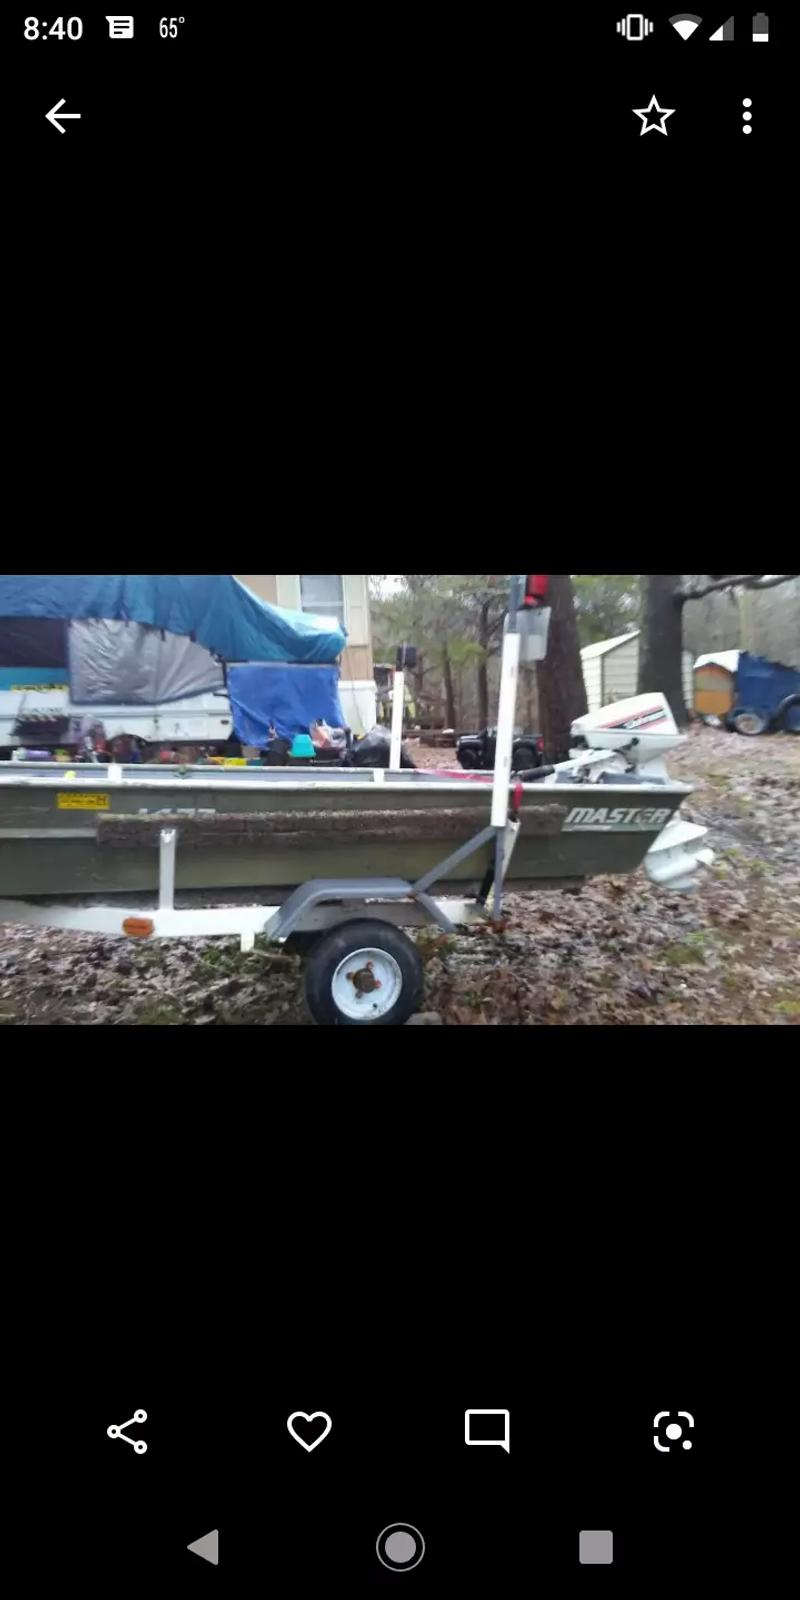 Photo 14 ft game Fisher boat new life jackets new deep cycle battery new wheels tires and berrings and trailer lights ready to fish